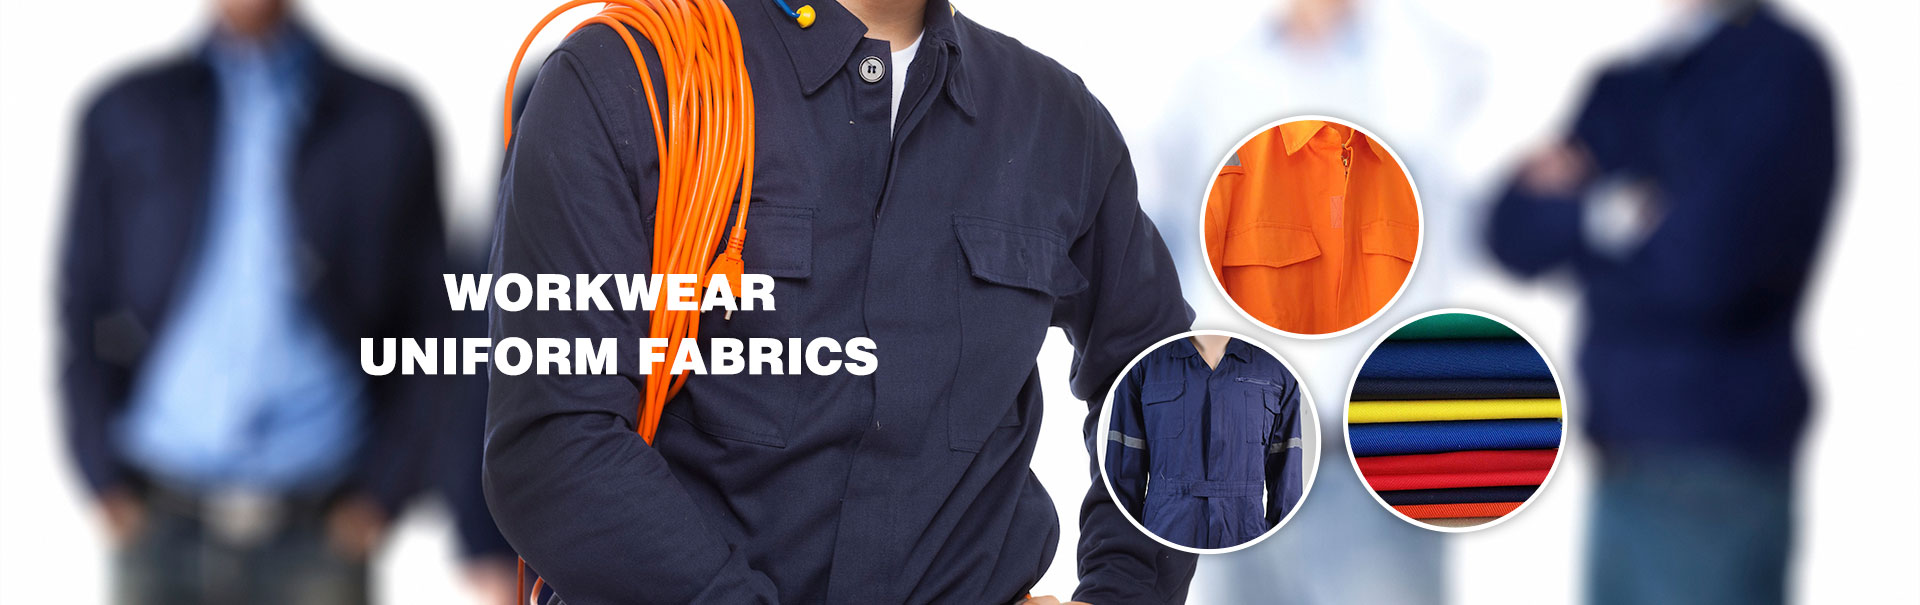 Workwear Uniform Fabrics Supplier